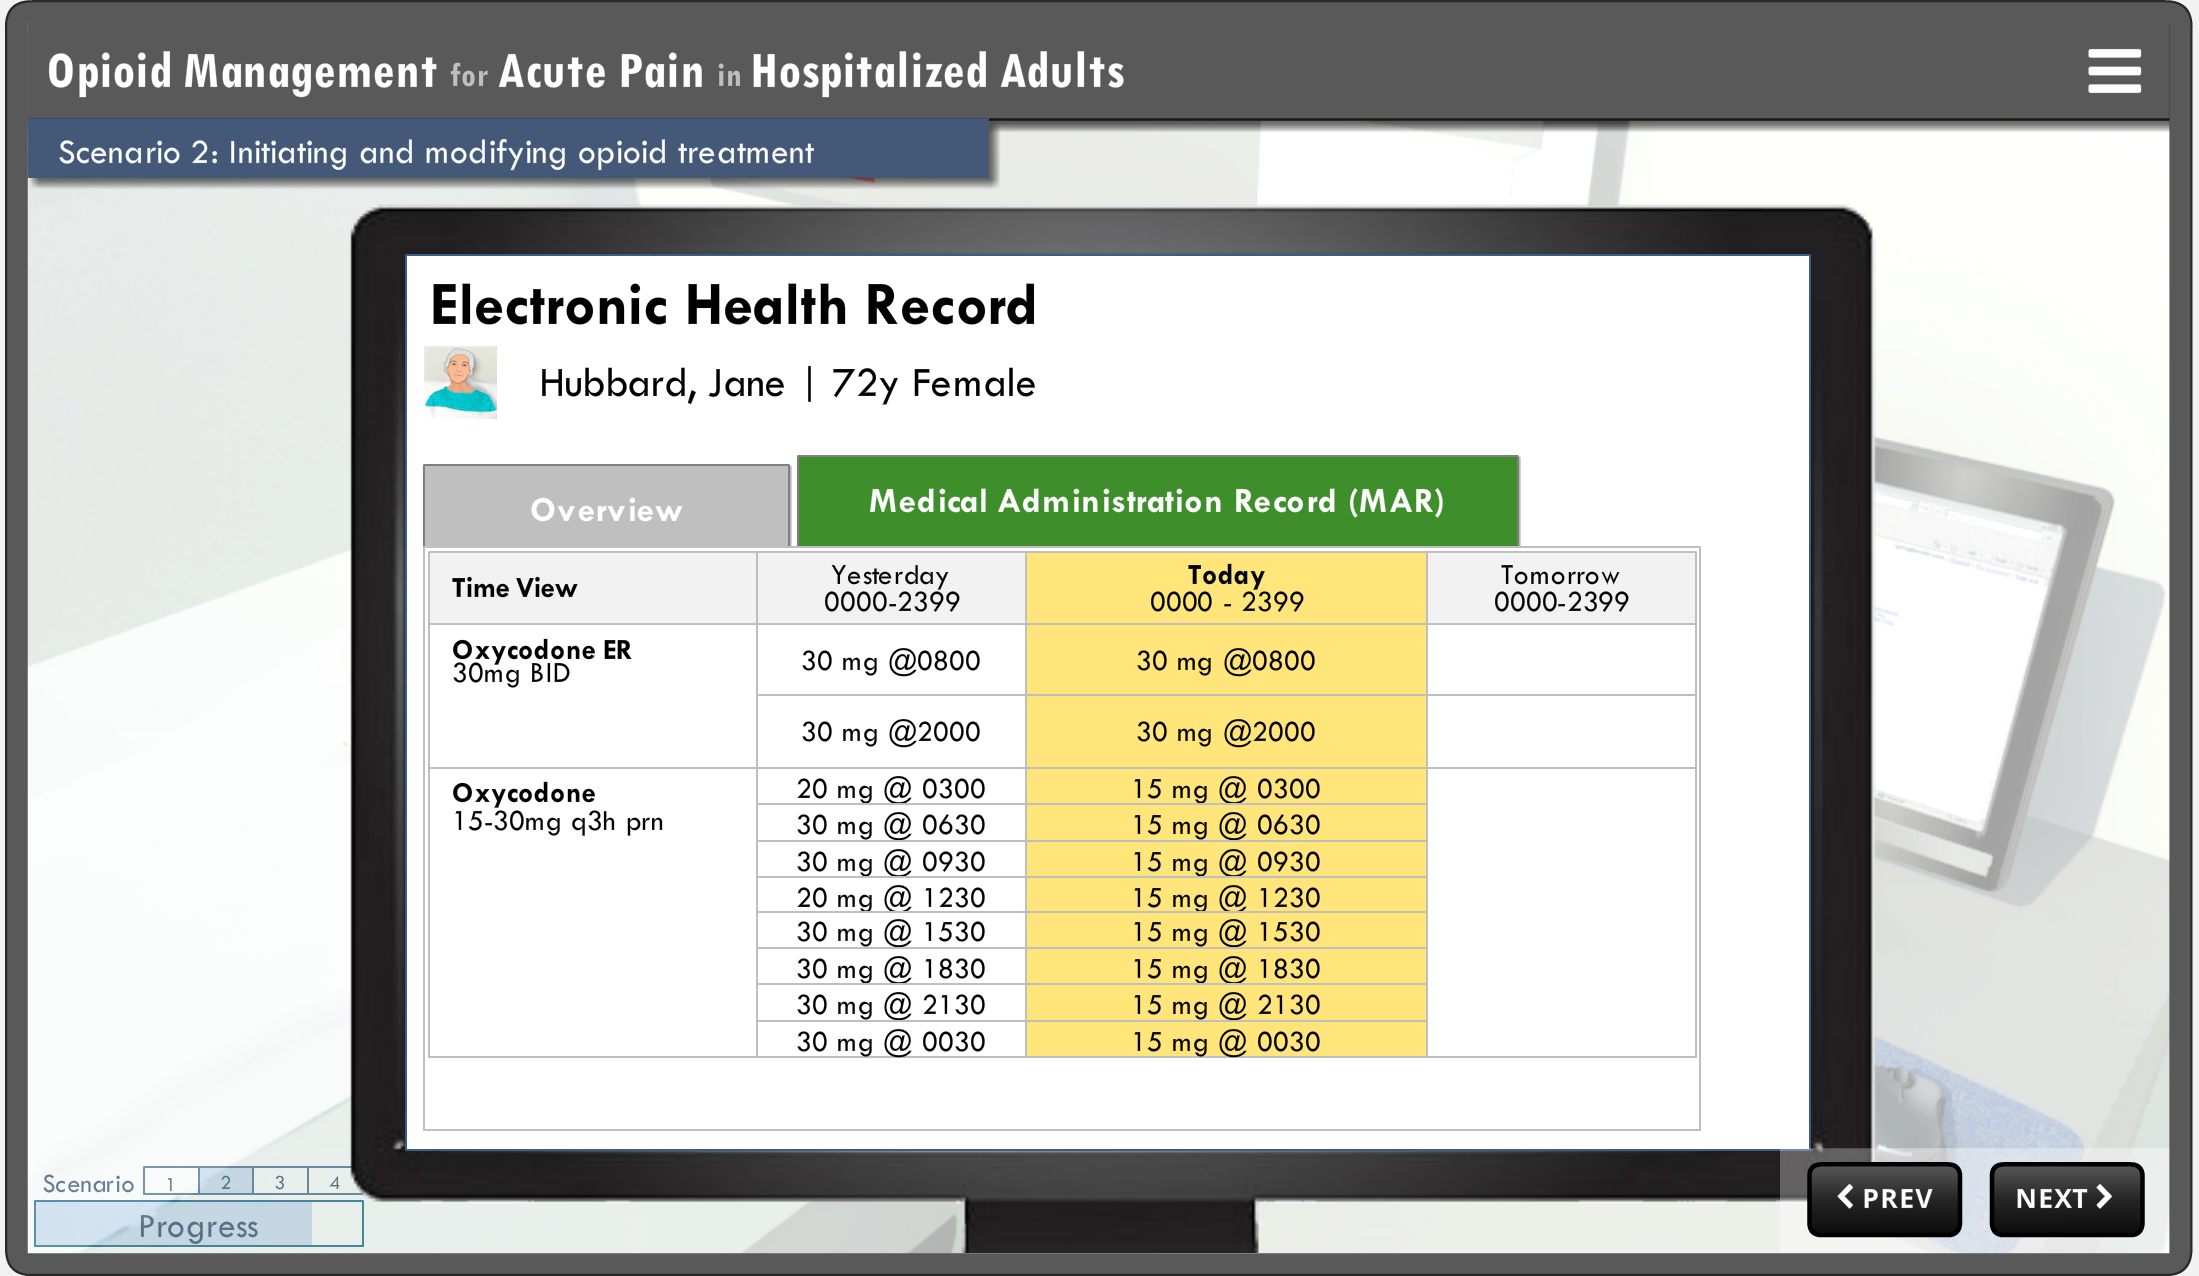 Simplified Electronic Health Record interface showing the Medical Administration Record